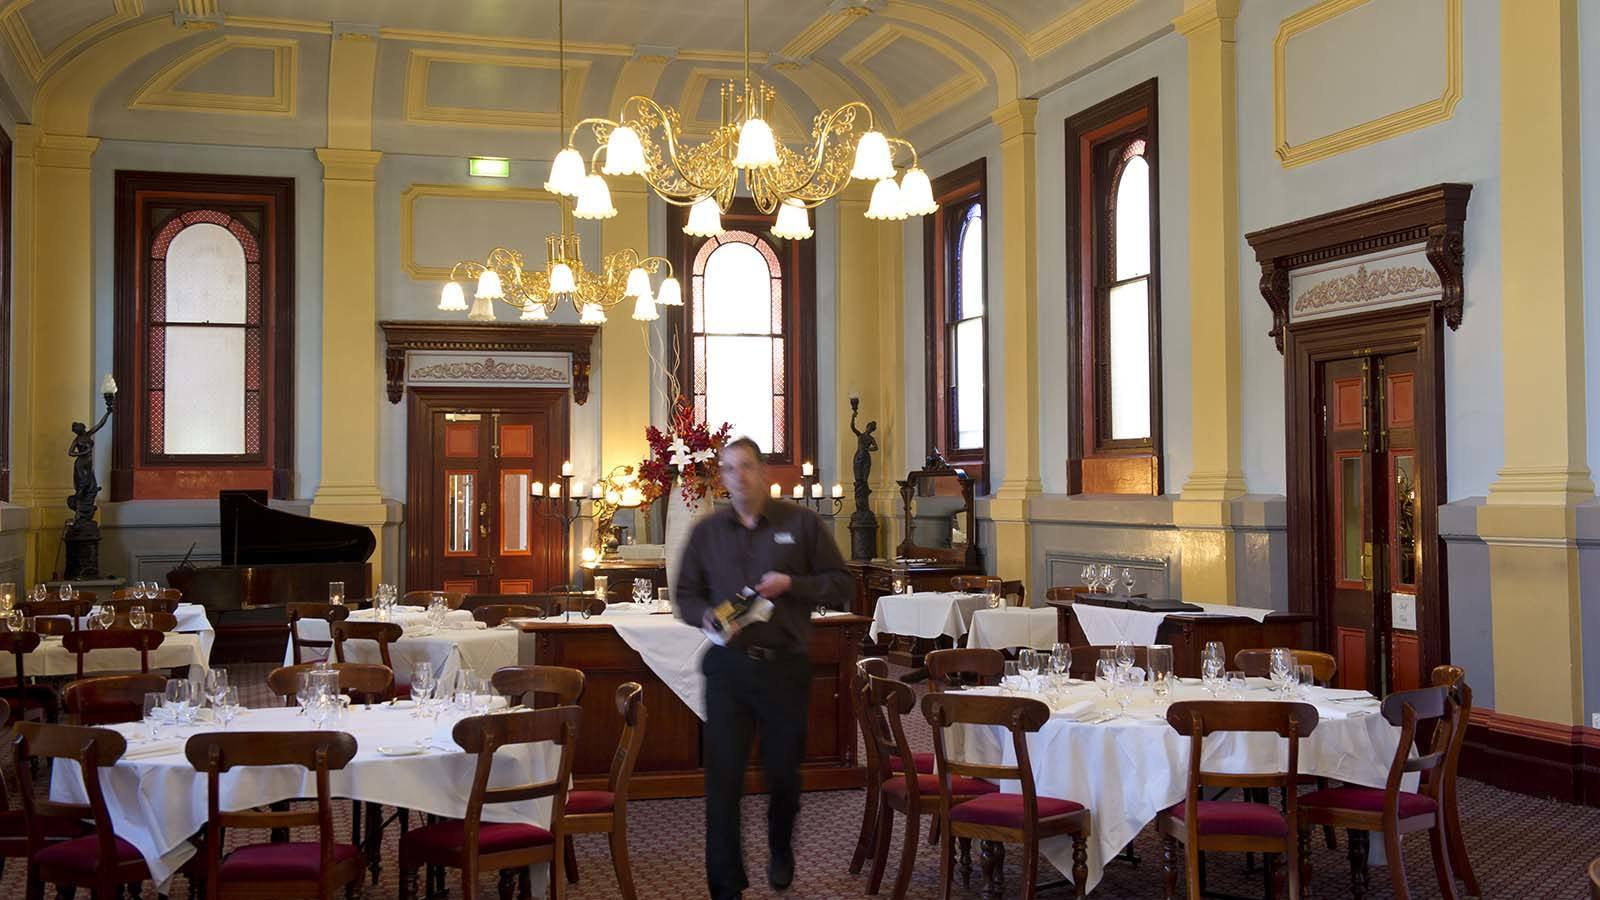 Vue Grand Dining Room, Geelong and the Bellarine, Victoria, Australia